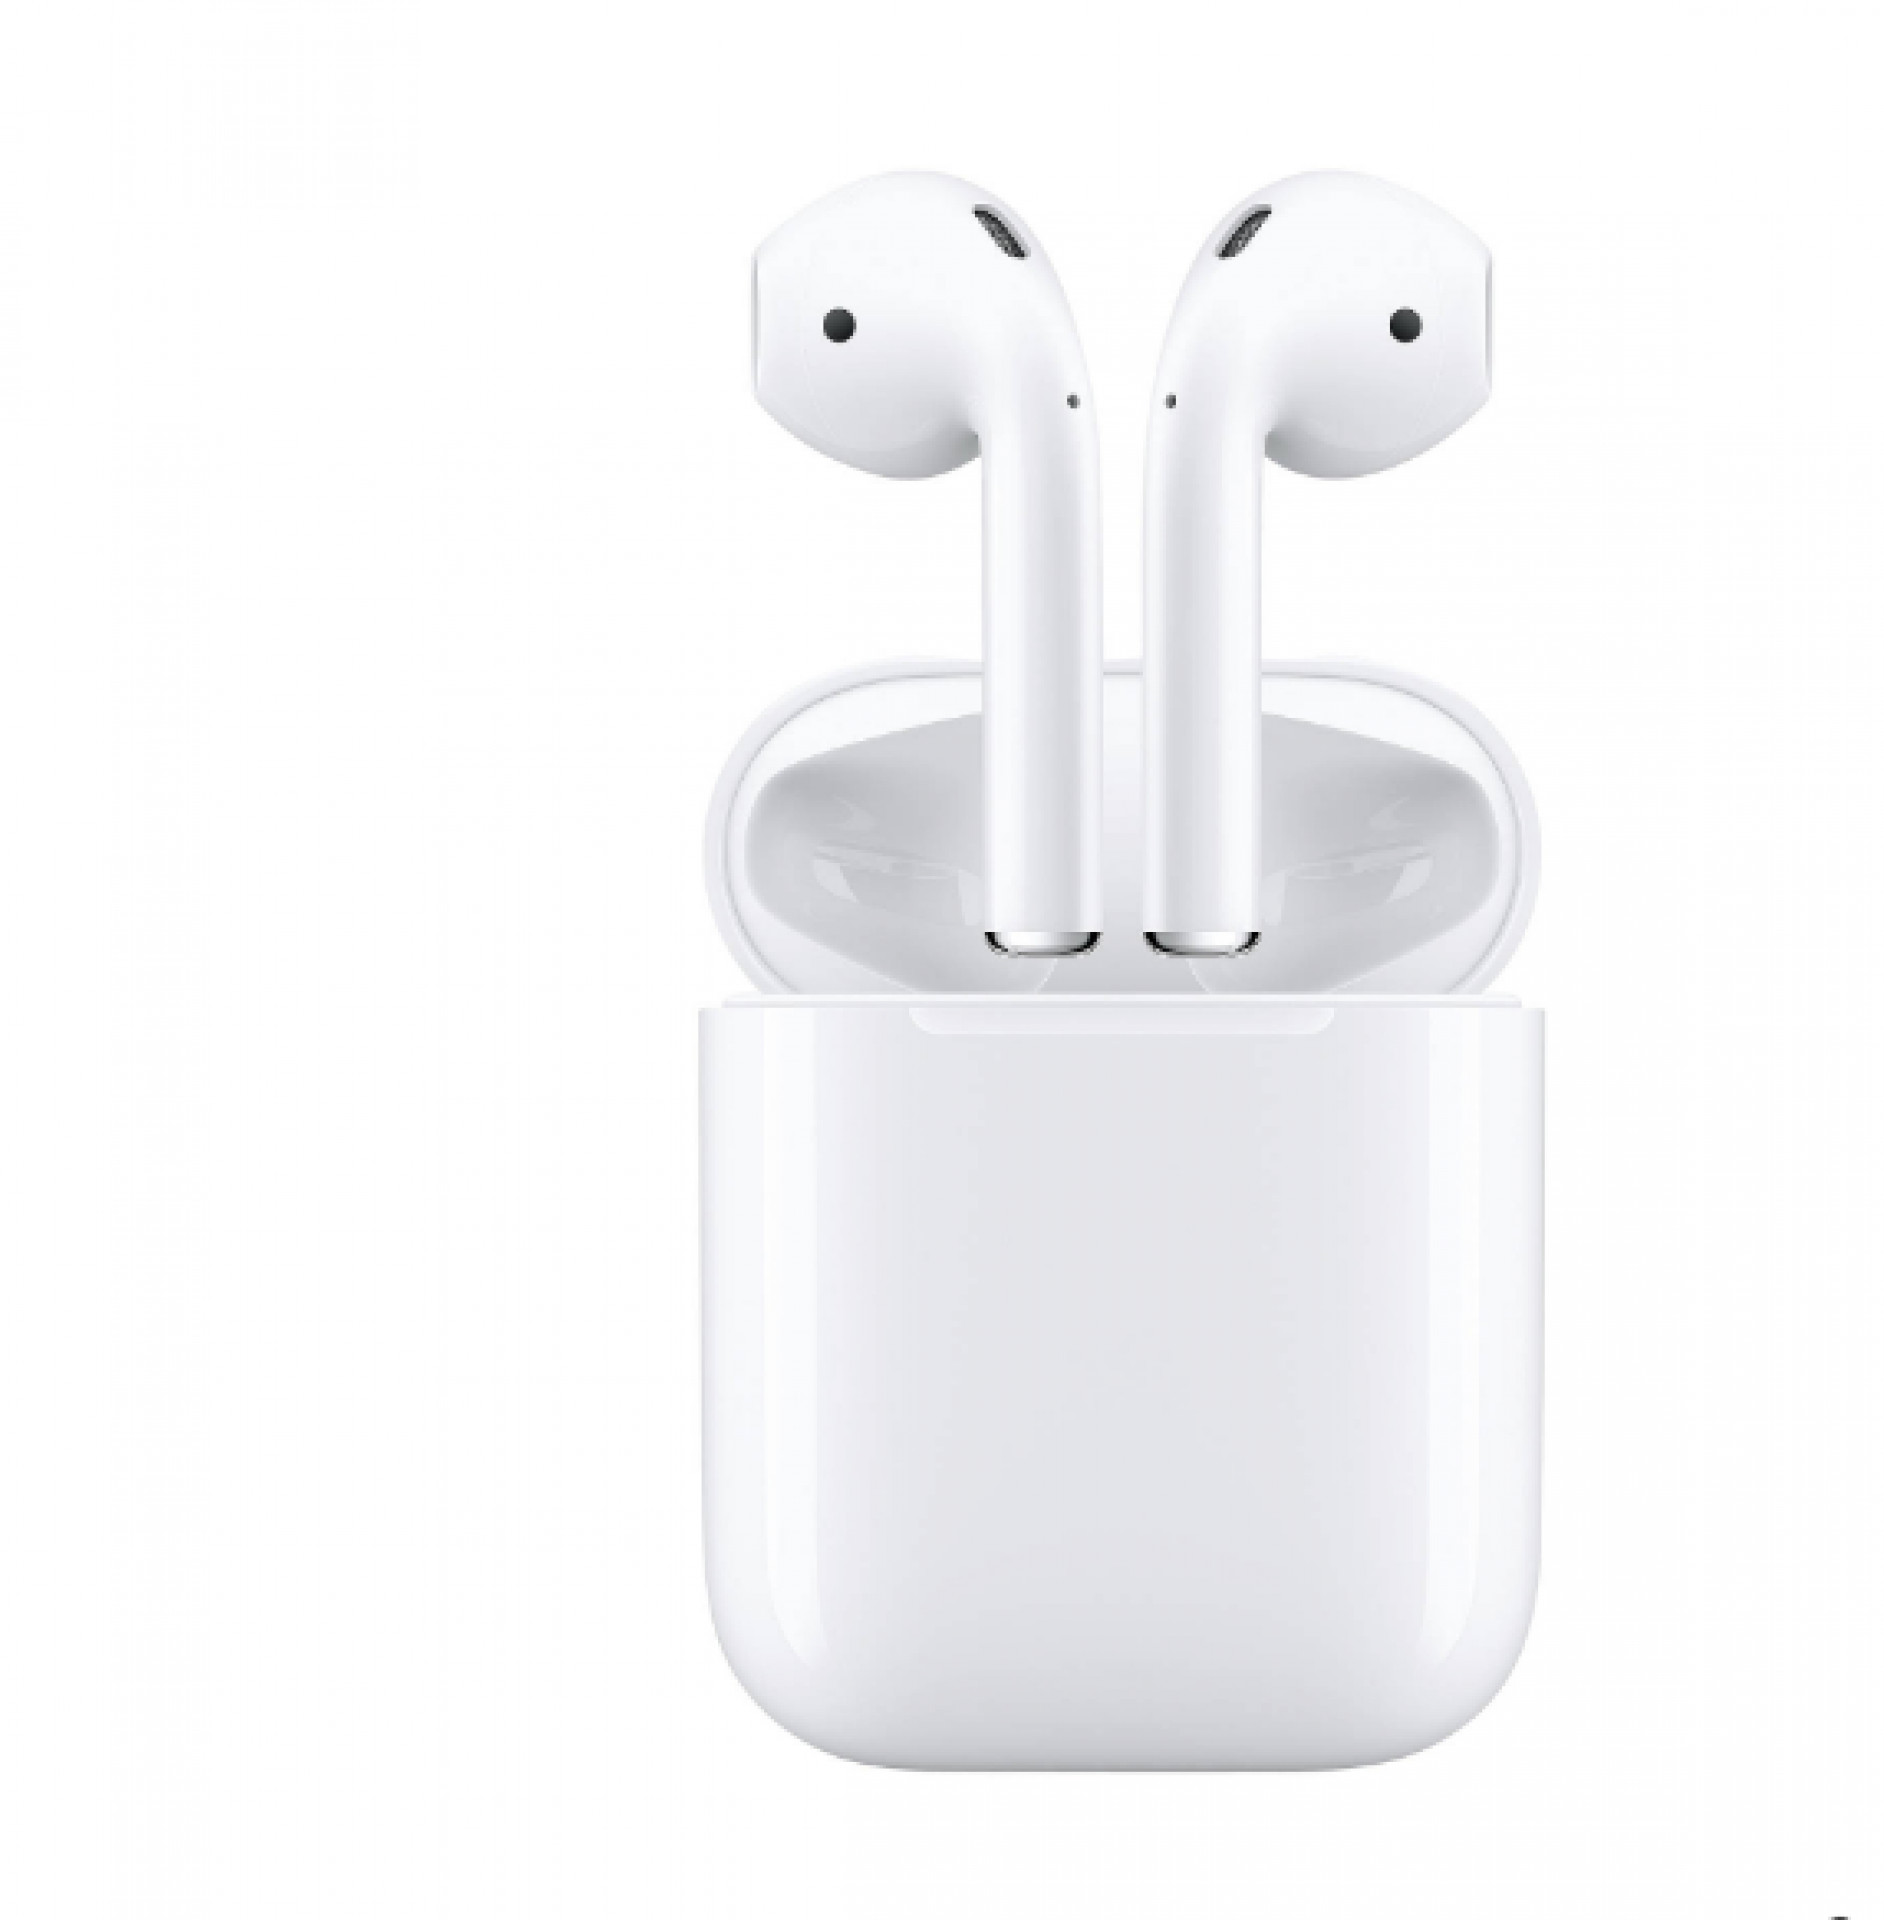 2019 Apple AirPods with Charging Case